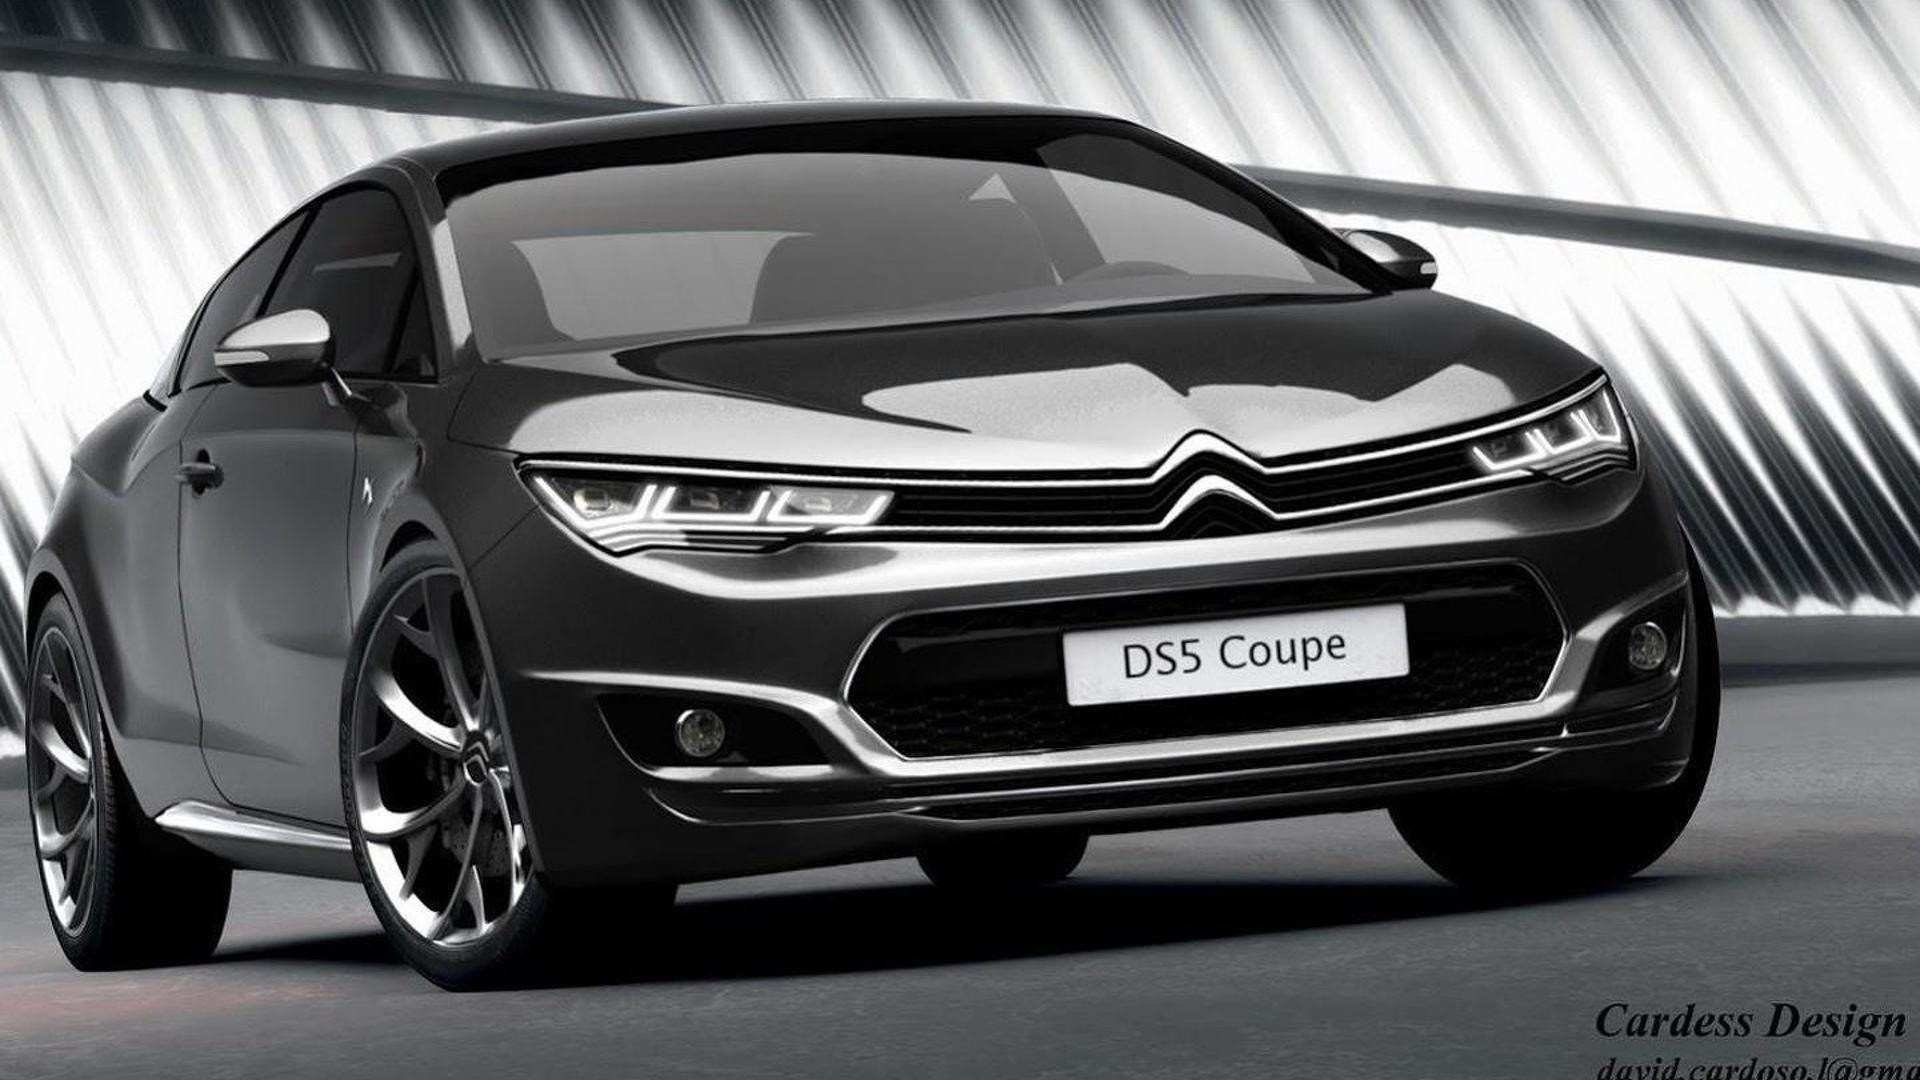 87 A 2019 Citroen DS5 Spy Shoot